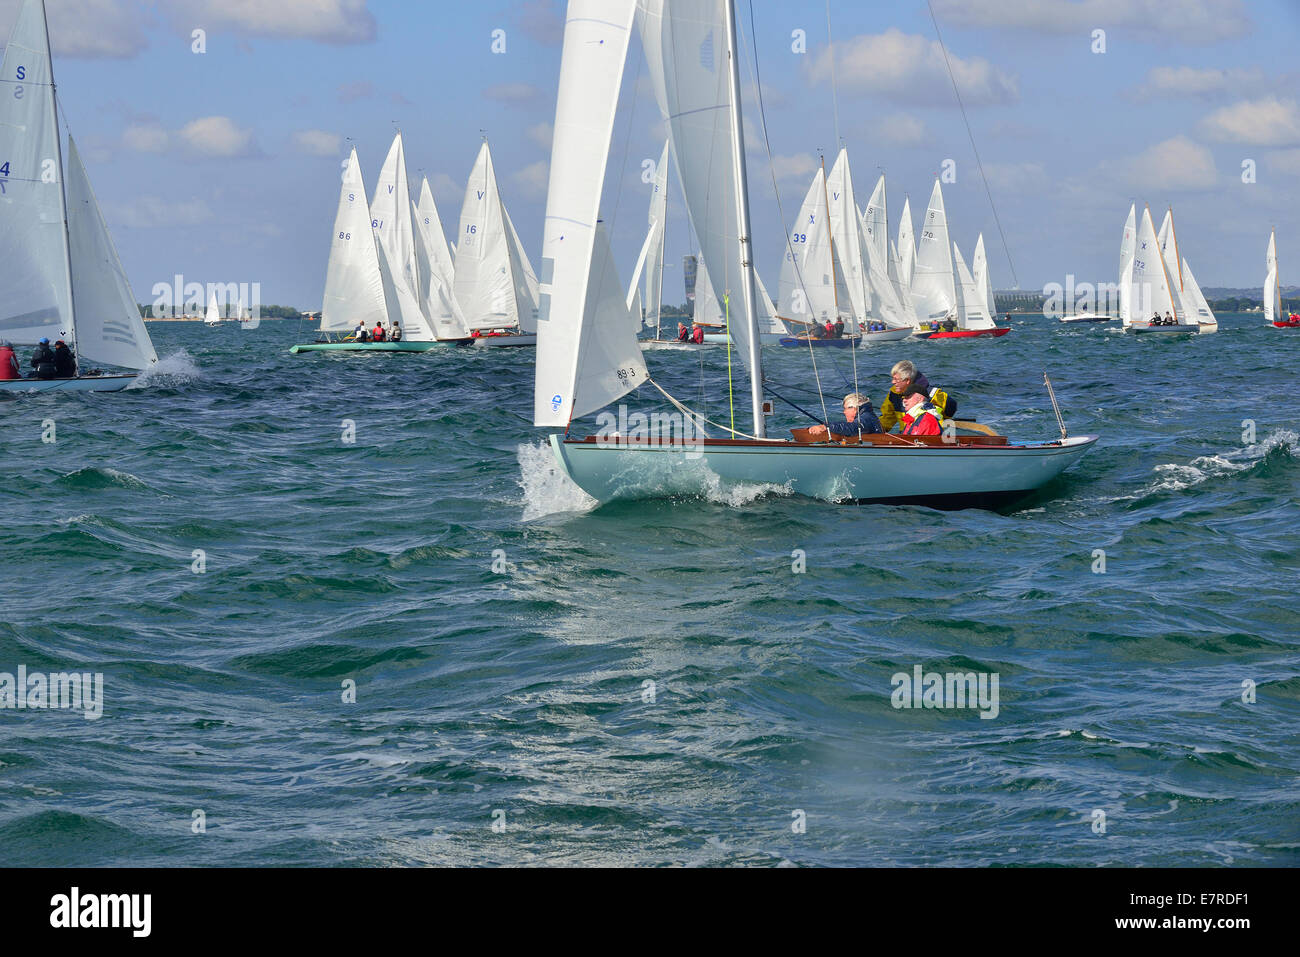 Sunbeam keel class boat racing towards downwind buoy  in mixed fleet race during Barts Bash in Chichester Harbour - Stock Image